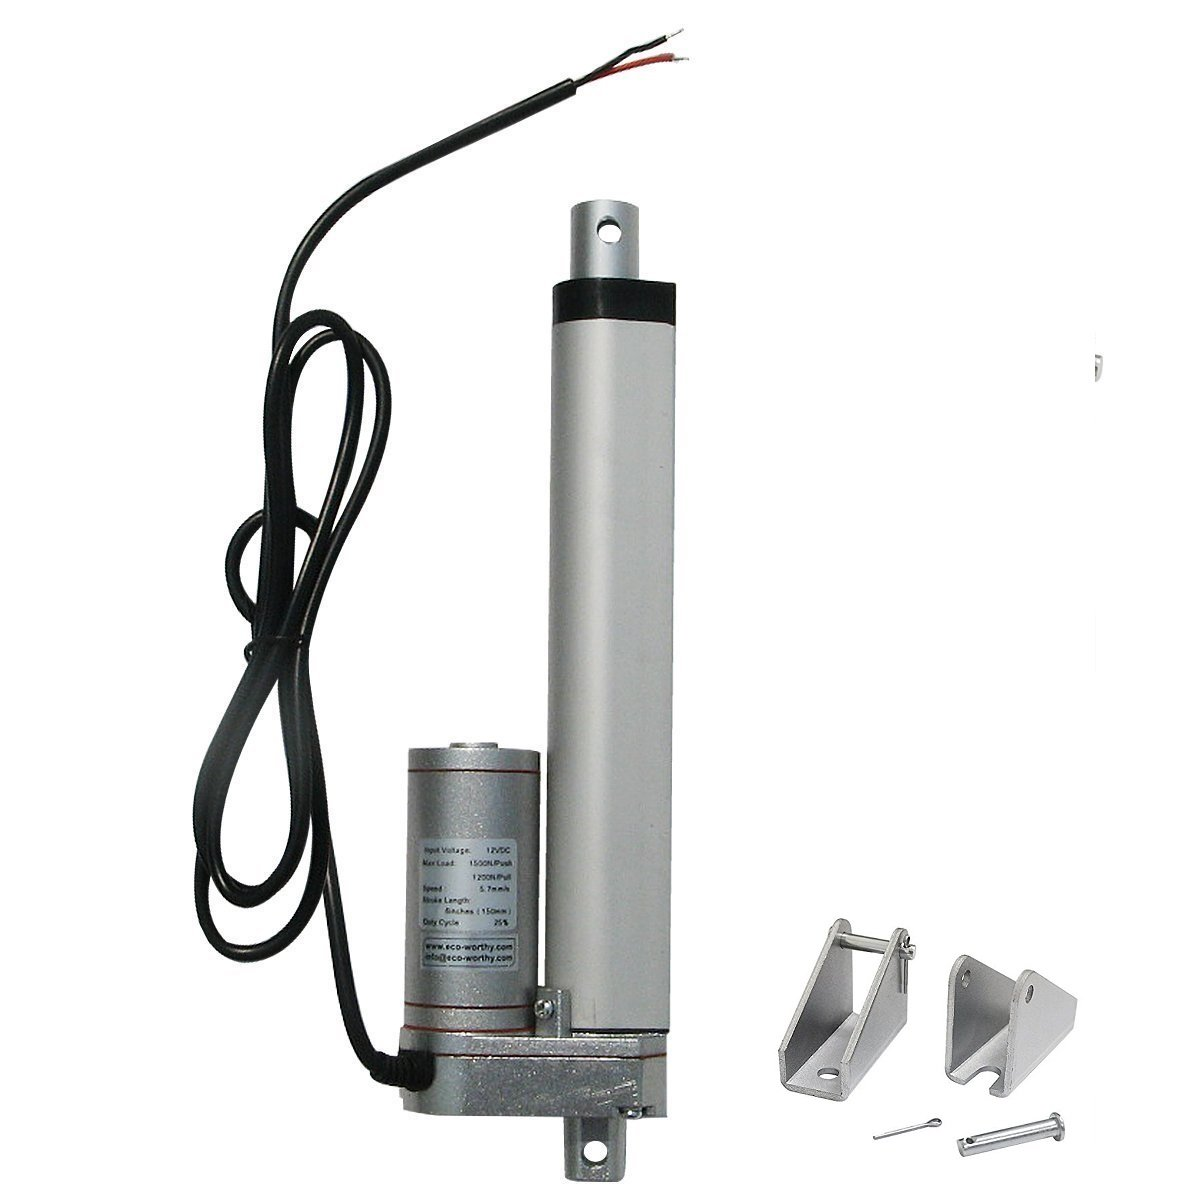 ECO-WORTHY 12V 6 Inch Stroke Linear Actuator 330lbs Maximum Lift with Mounting Brackets (12VDC 6'') by ECO-WORTHY